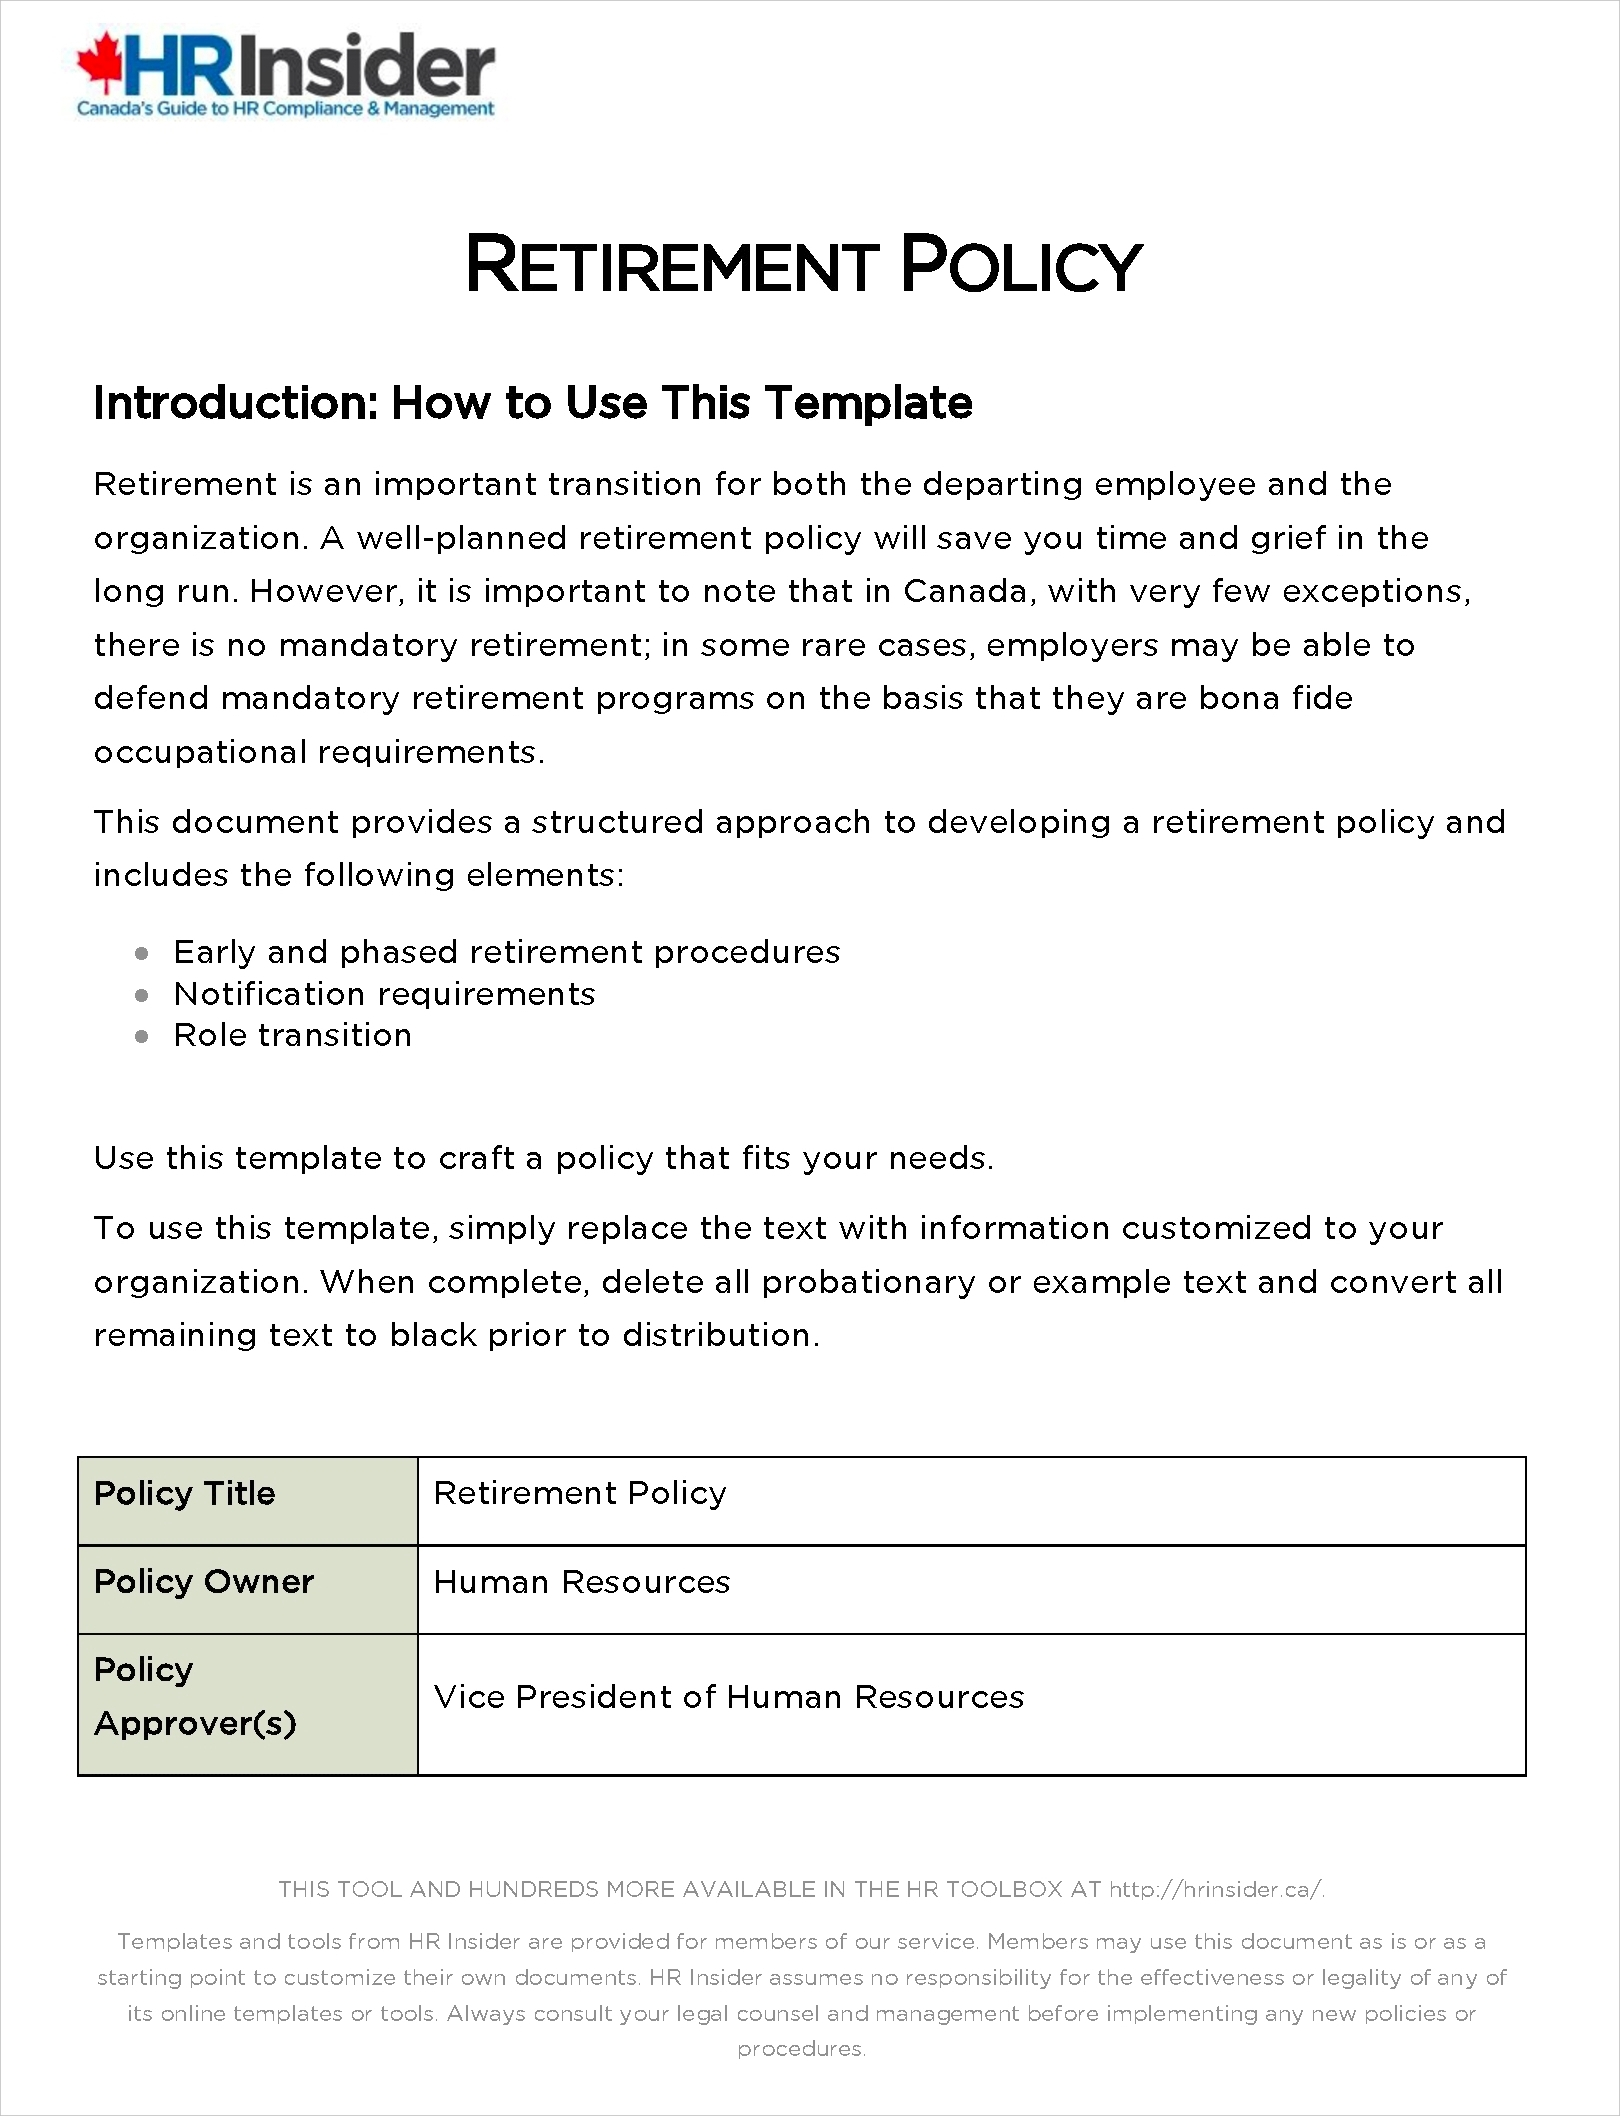 retirement policy template1